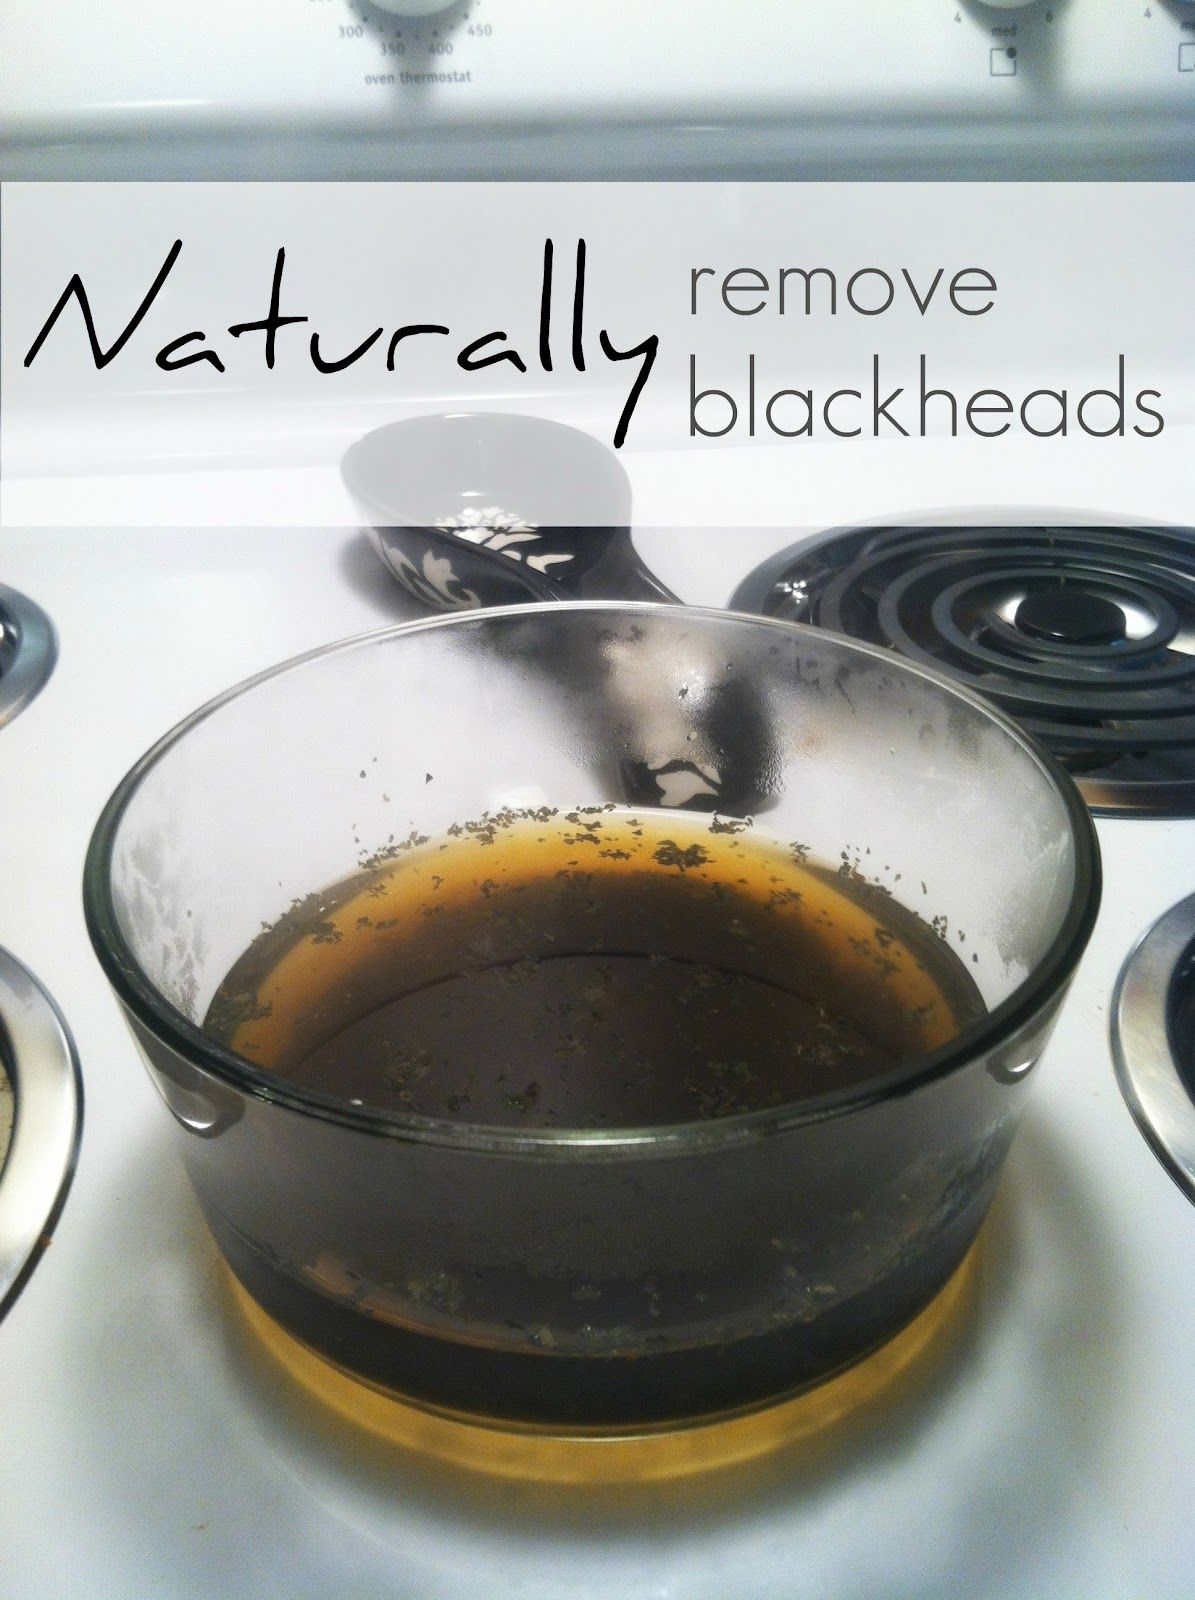 Naturally remove those pesky blackheads